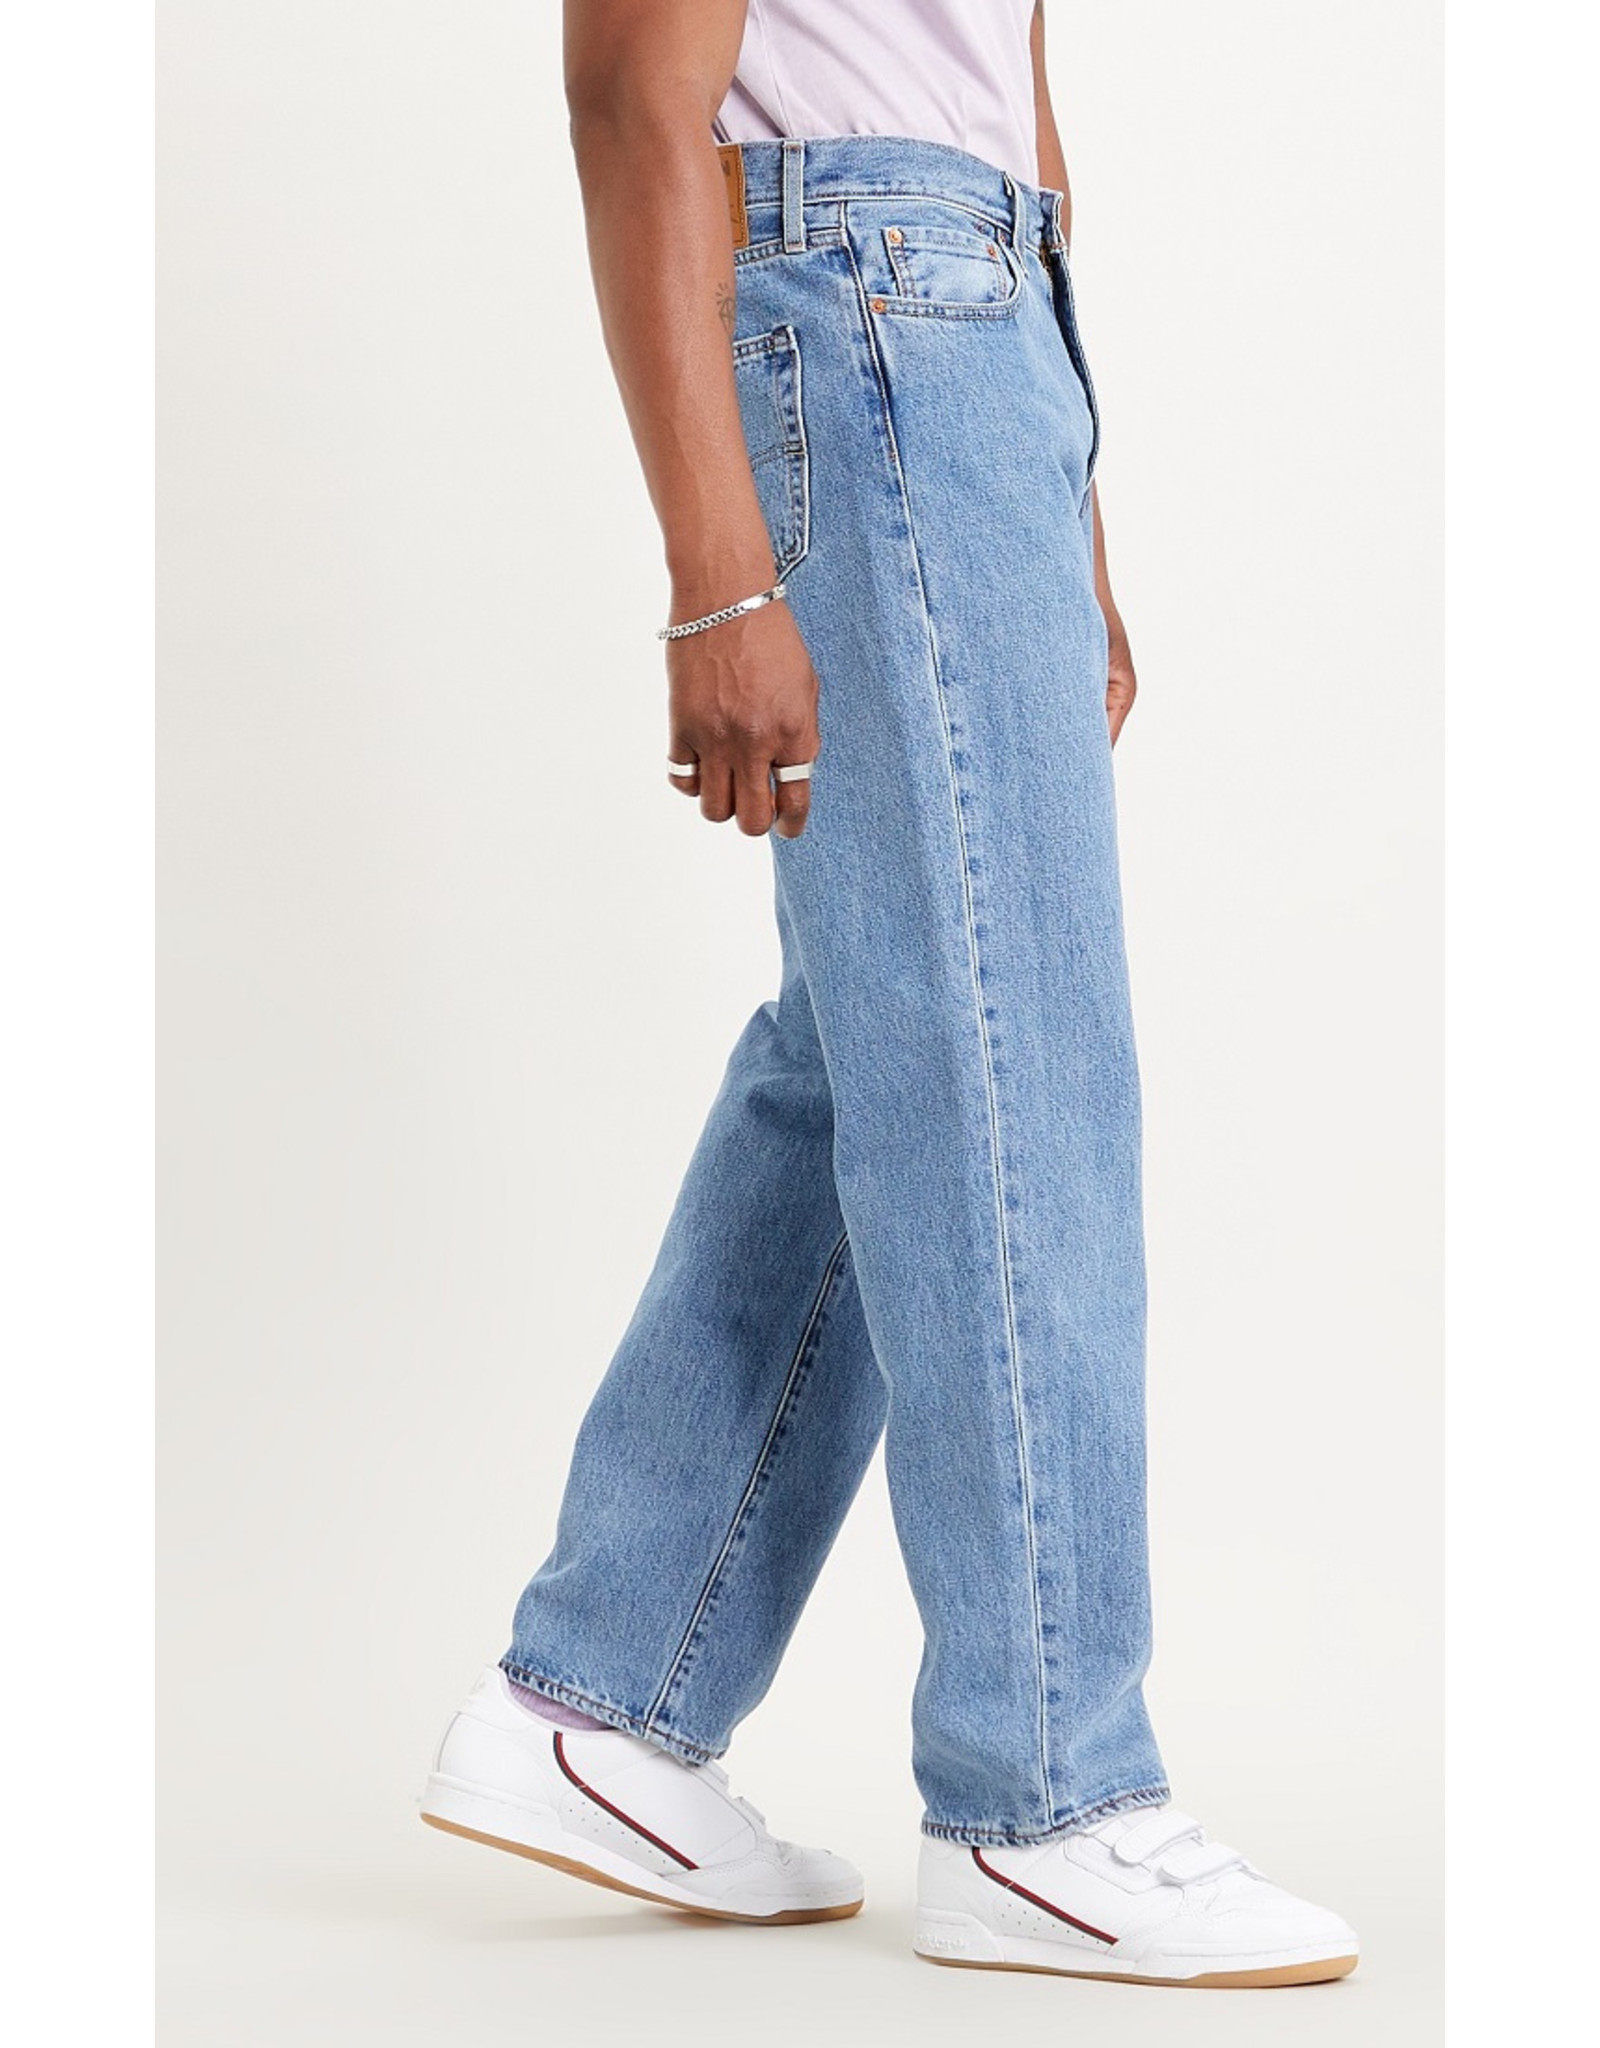 Levi's - Stay Loose Denim